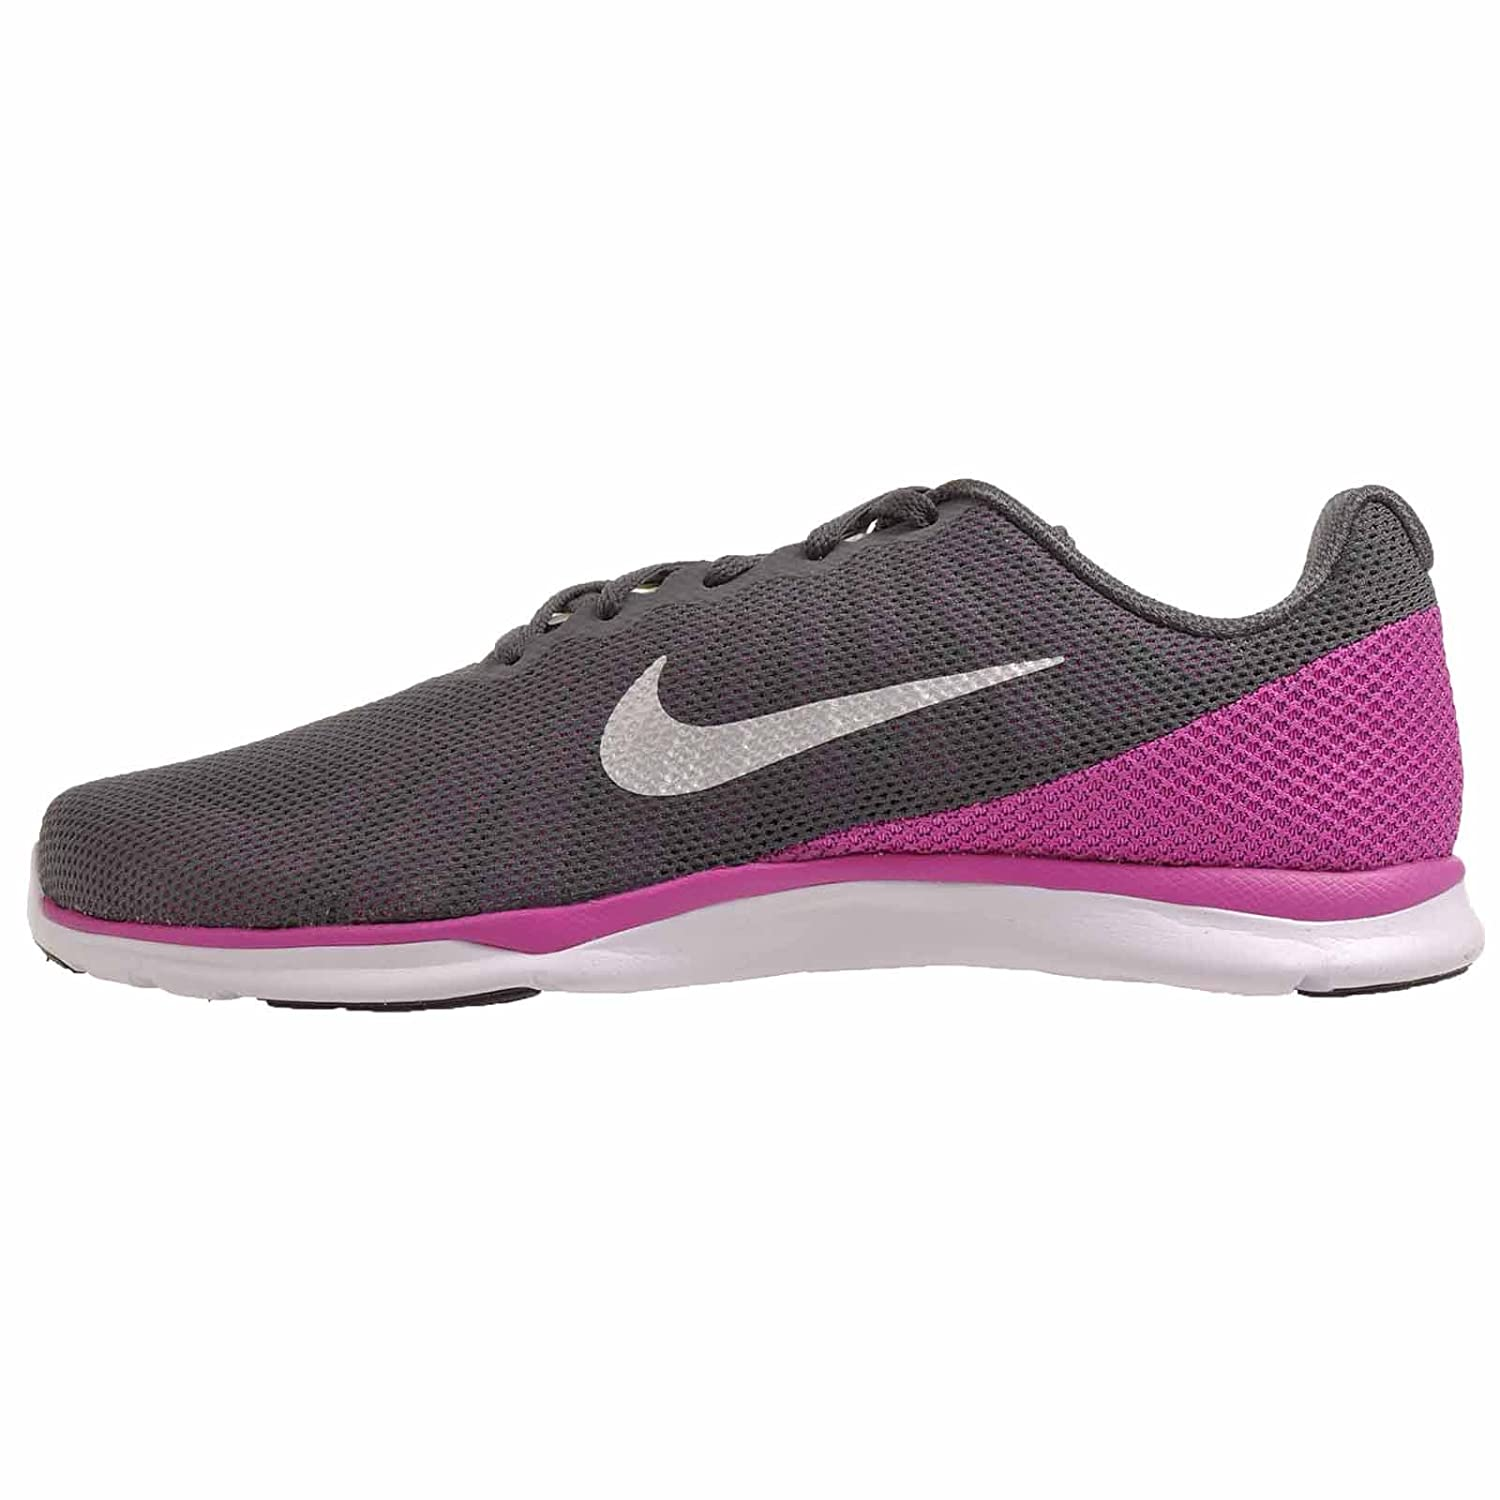 052e50a0022 ... NIKE Cross Women s in-Season TR 6 Cross NIKE Training Shoe B01DL3WNX4  5.5 B( ...